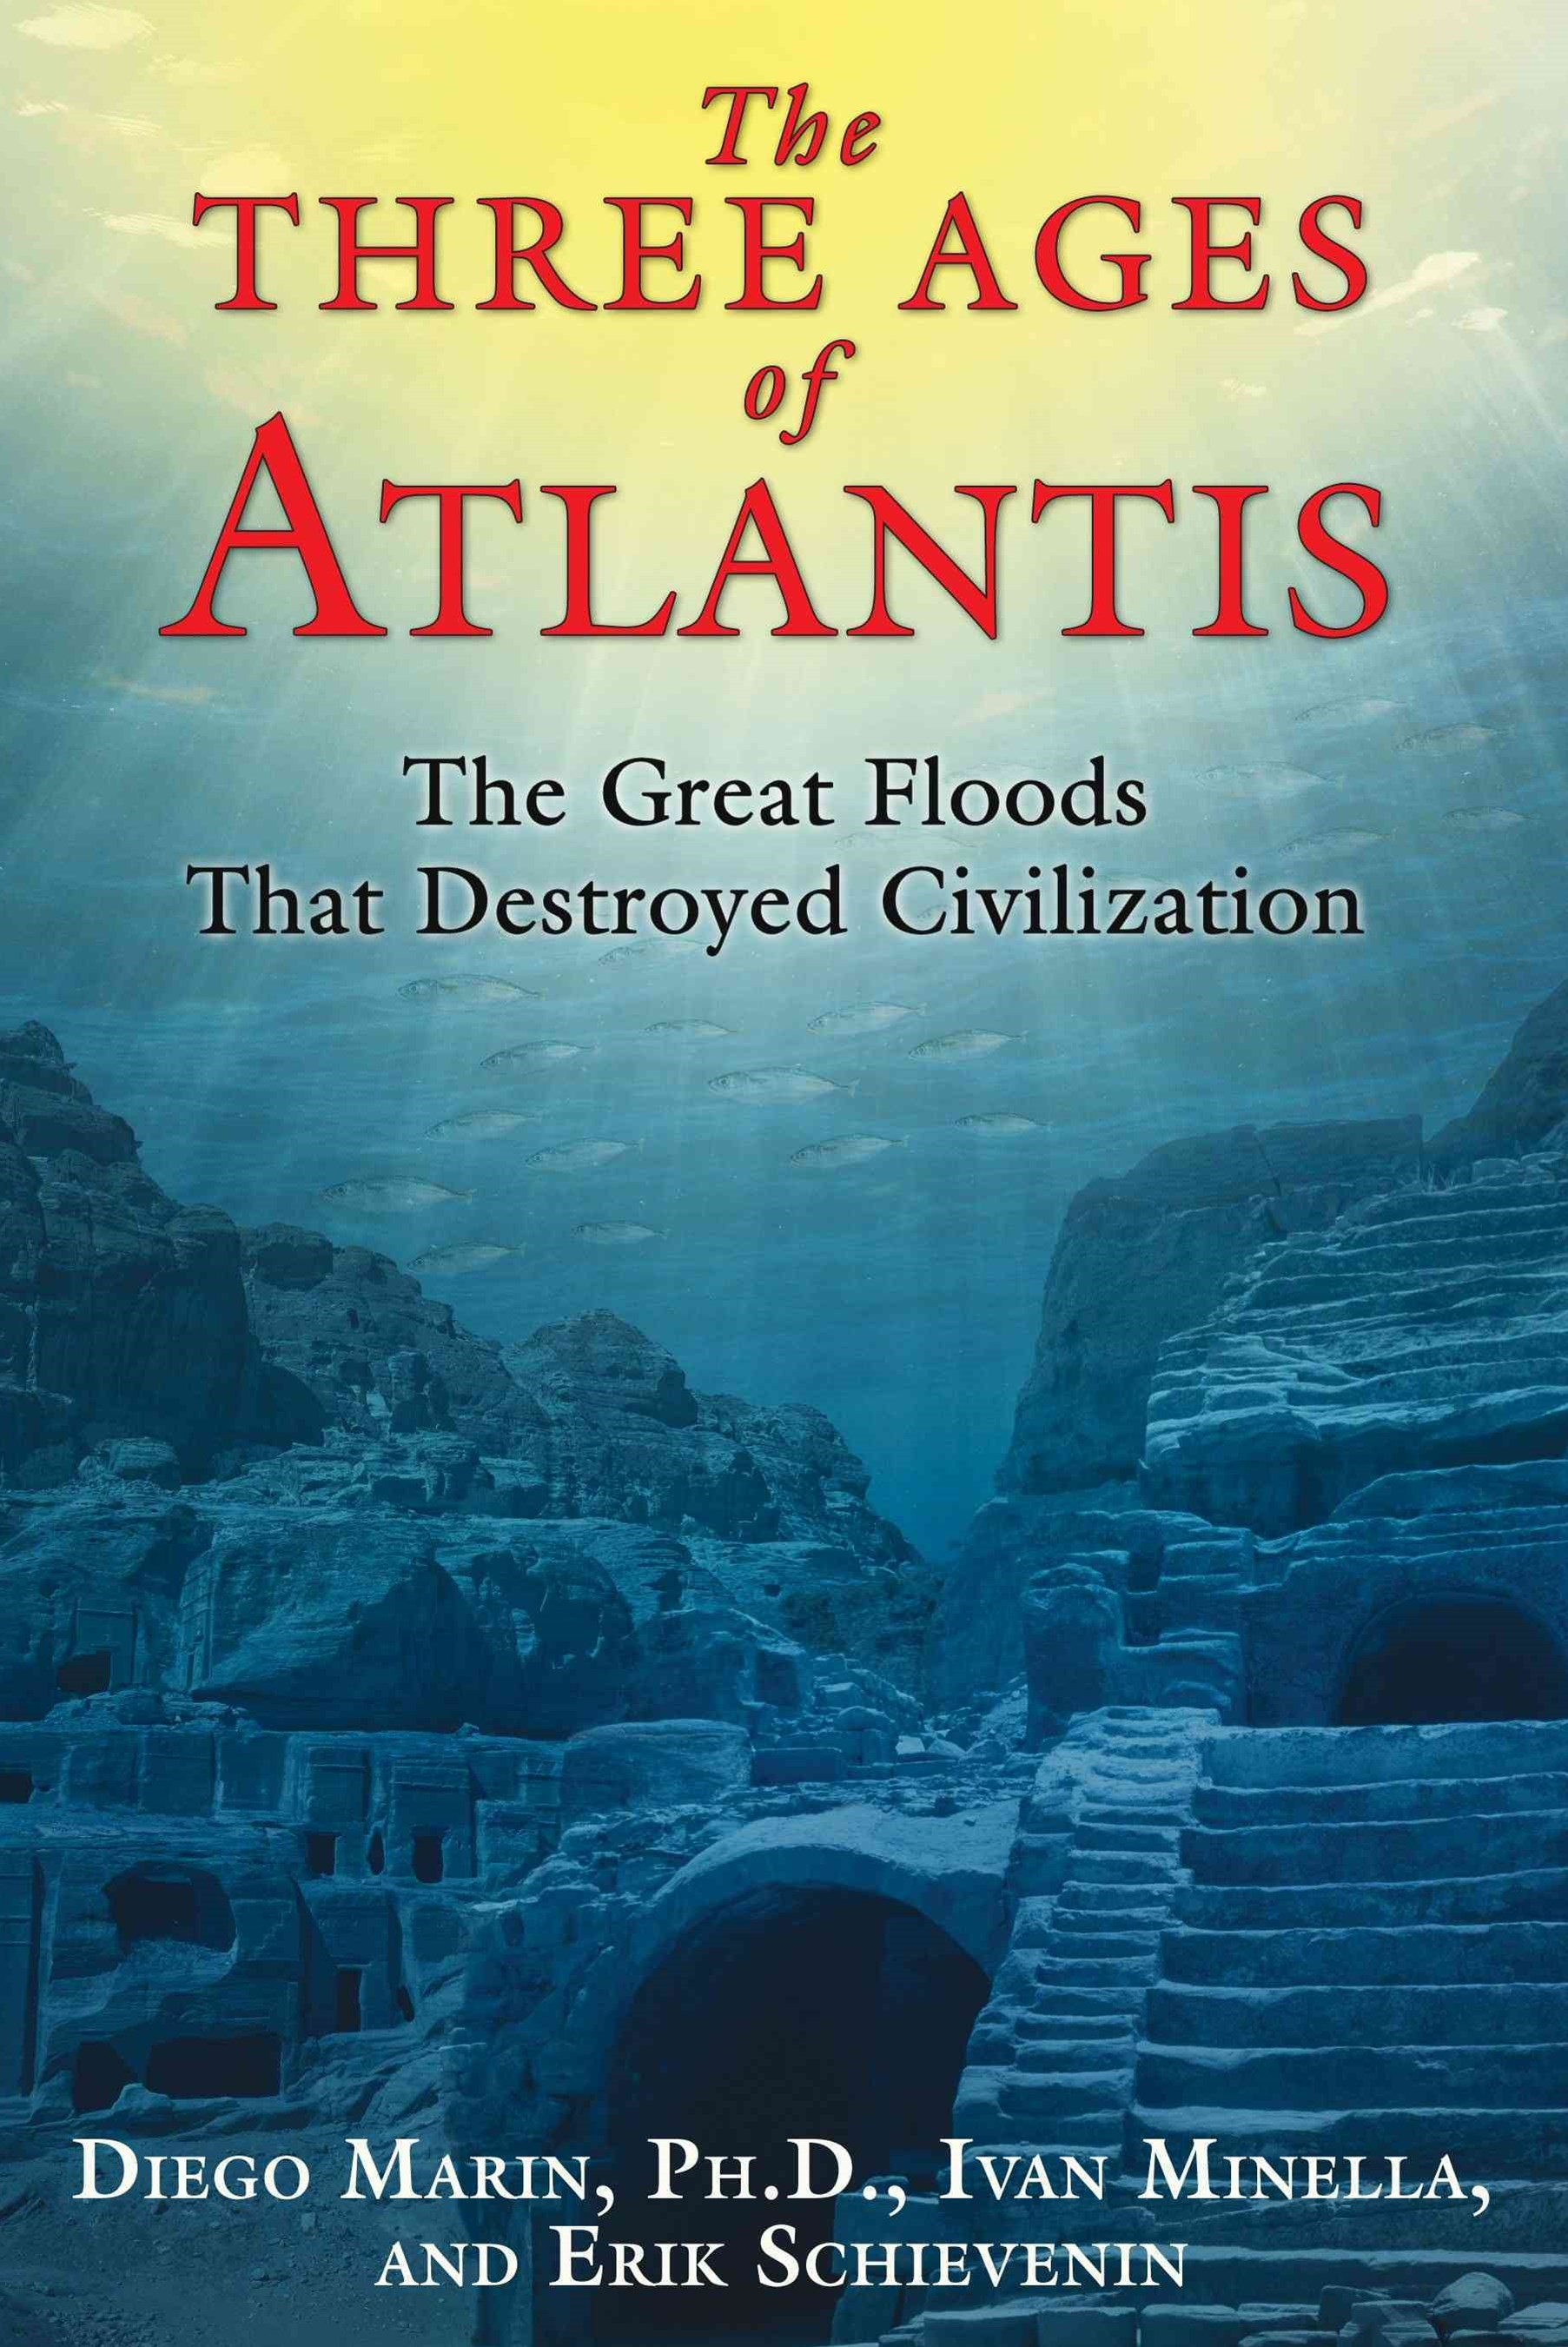 The Three Ages of Atlantis